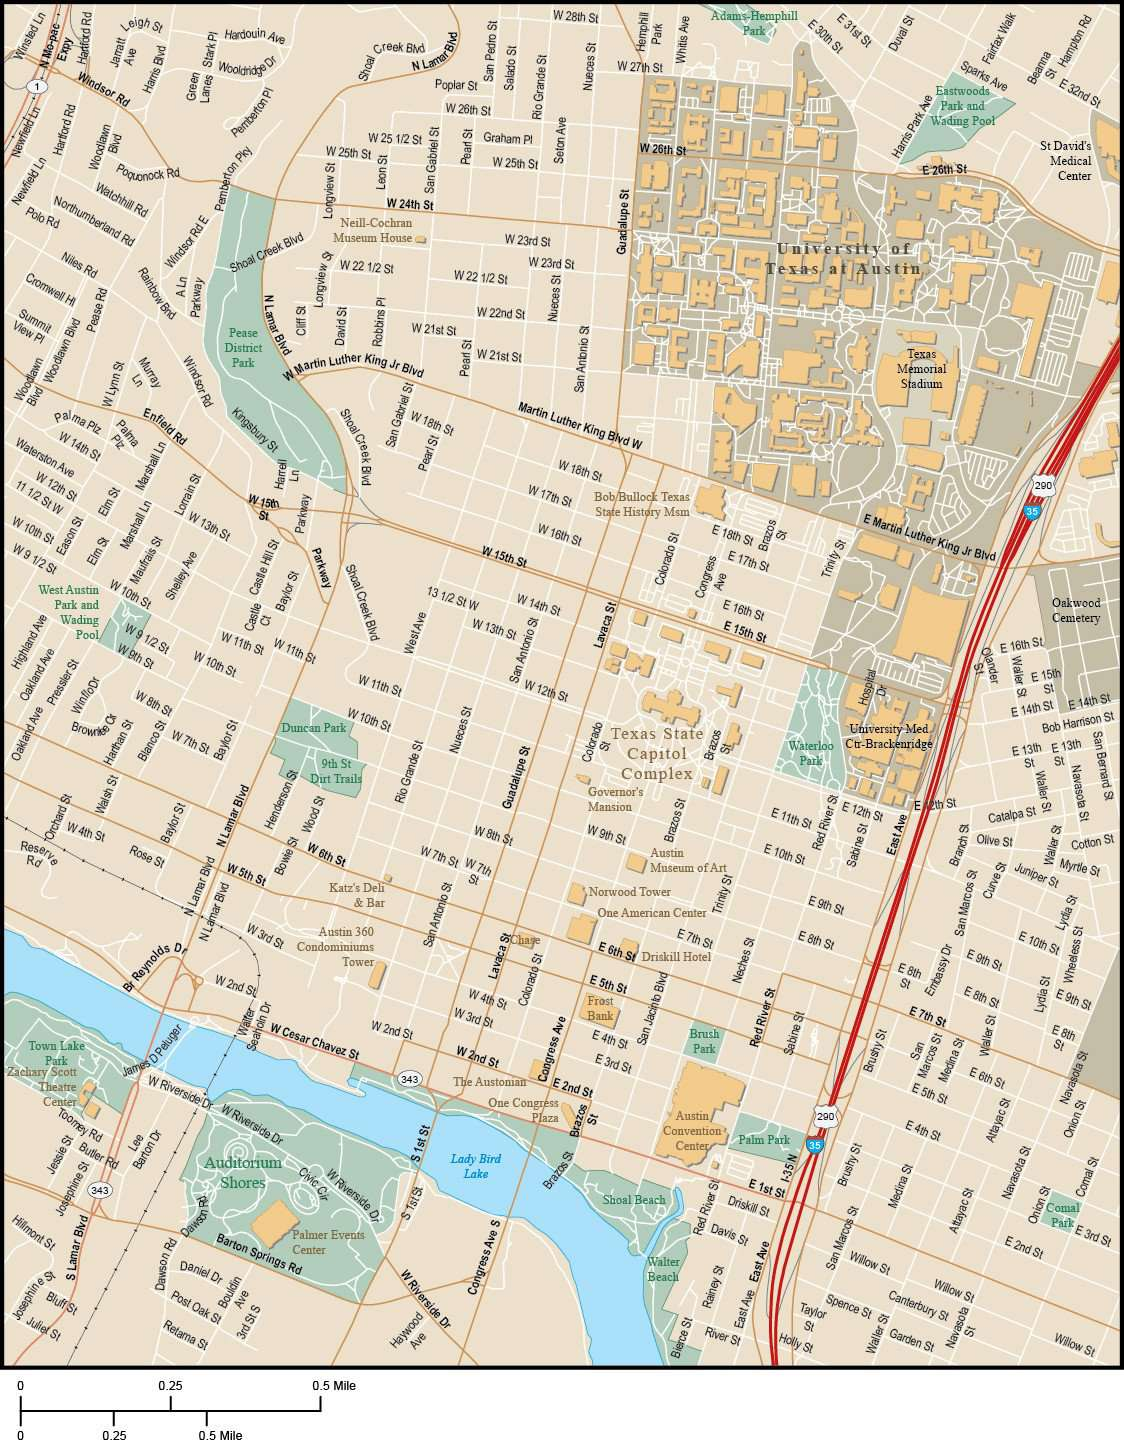 Austin Map With Local Streets In Adobe Illustrator Vector Format